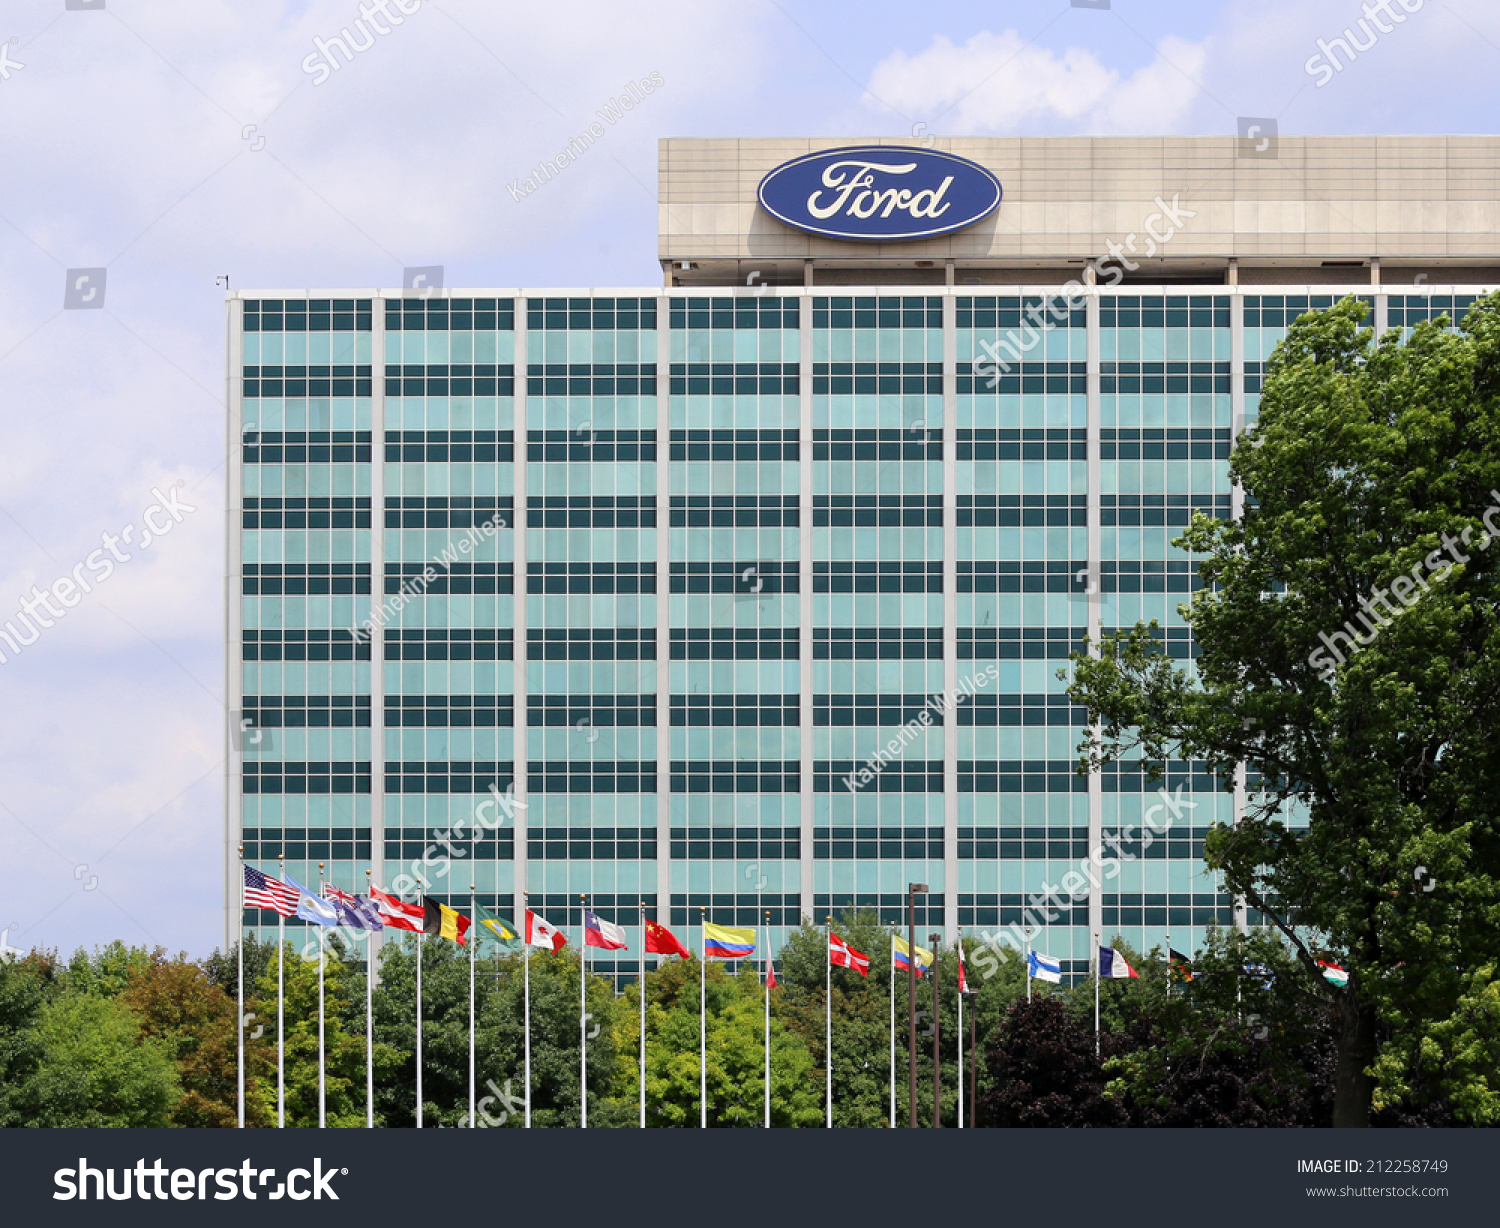 Dearborn mi july 31 the ford motor company world for Ford motor company corporate